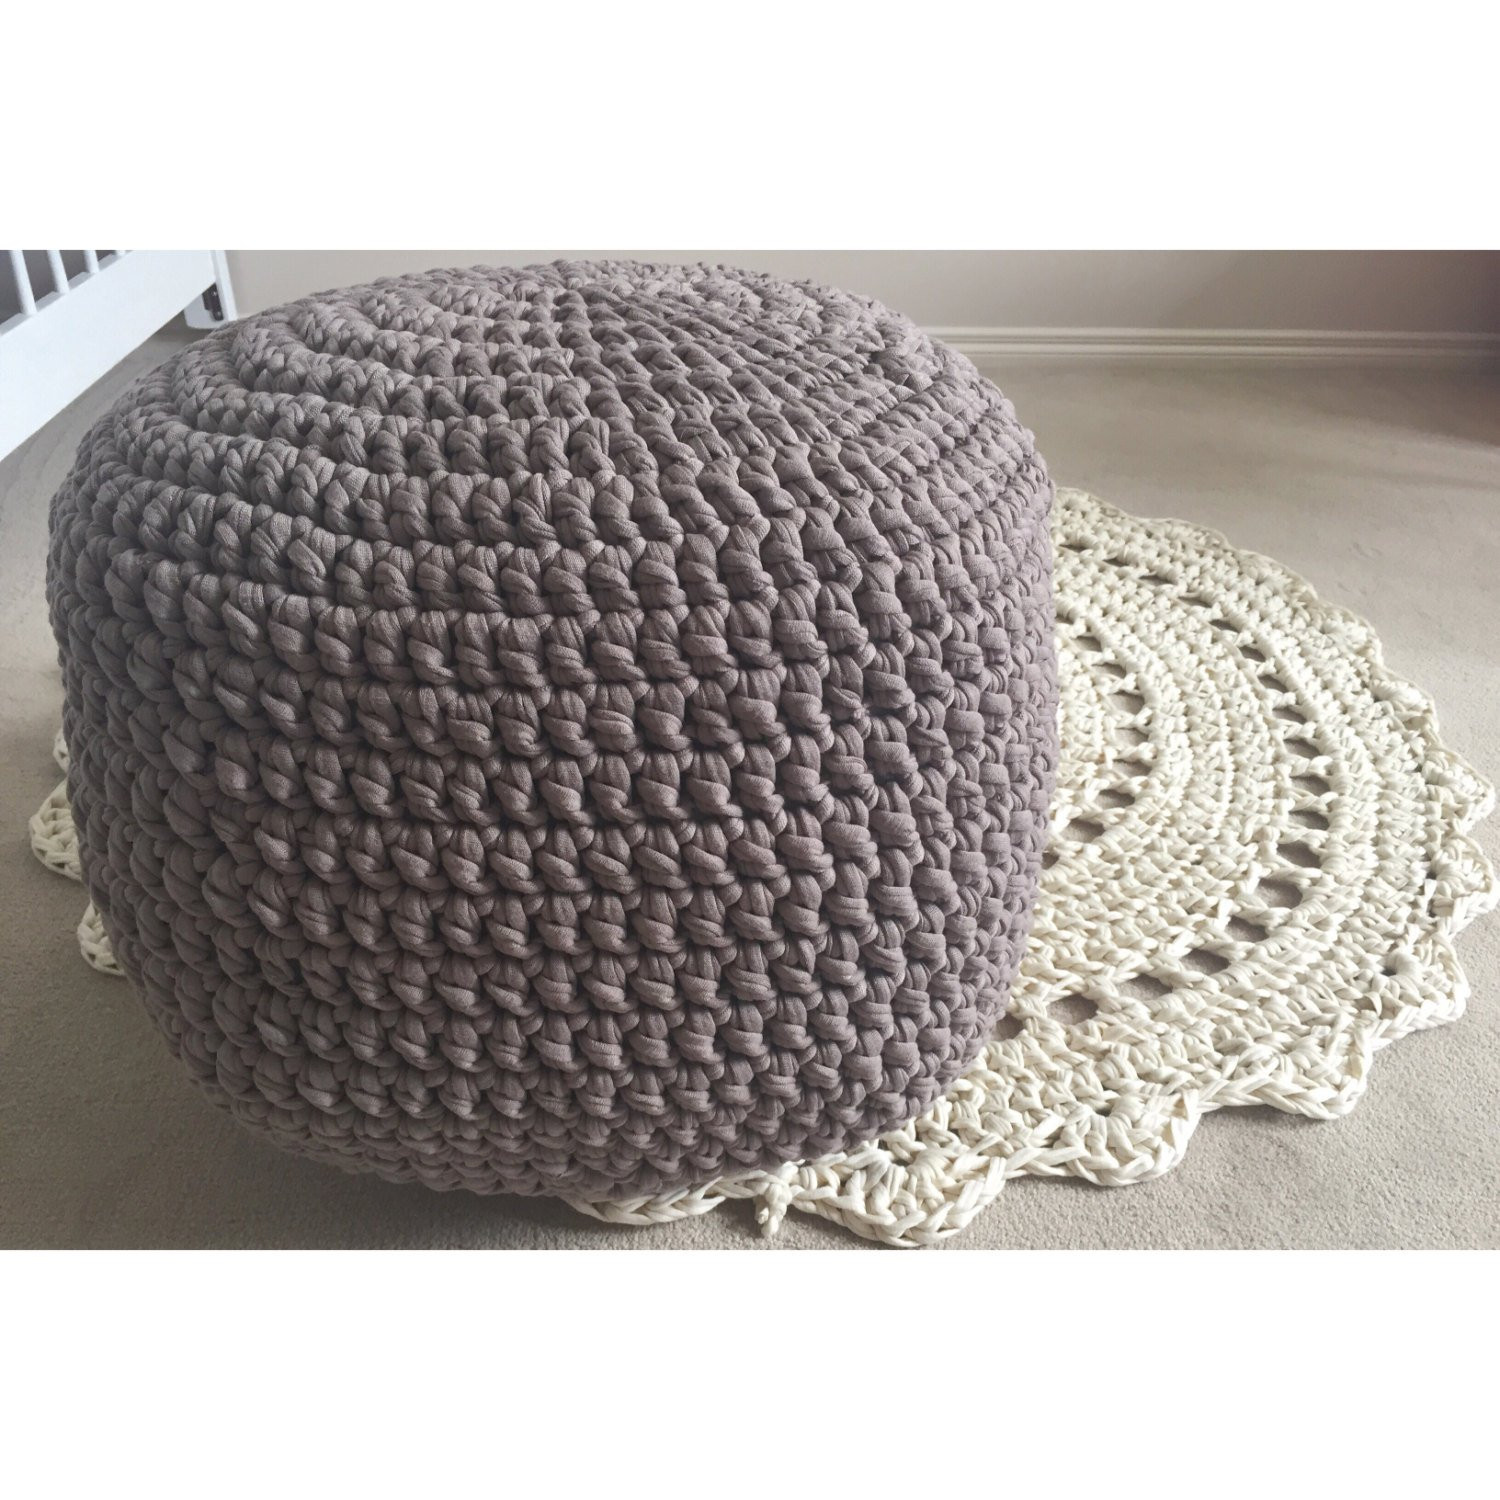 Crochet Ottoman Elegant Handmade Crochet Pouf Ottoman Footstool Of Incredible 42 Ideas Crochet Ottoman